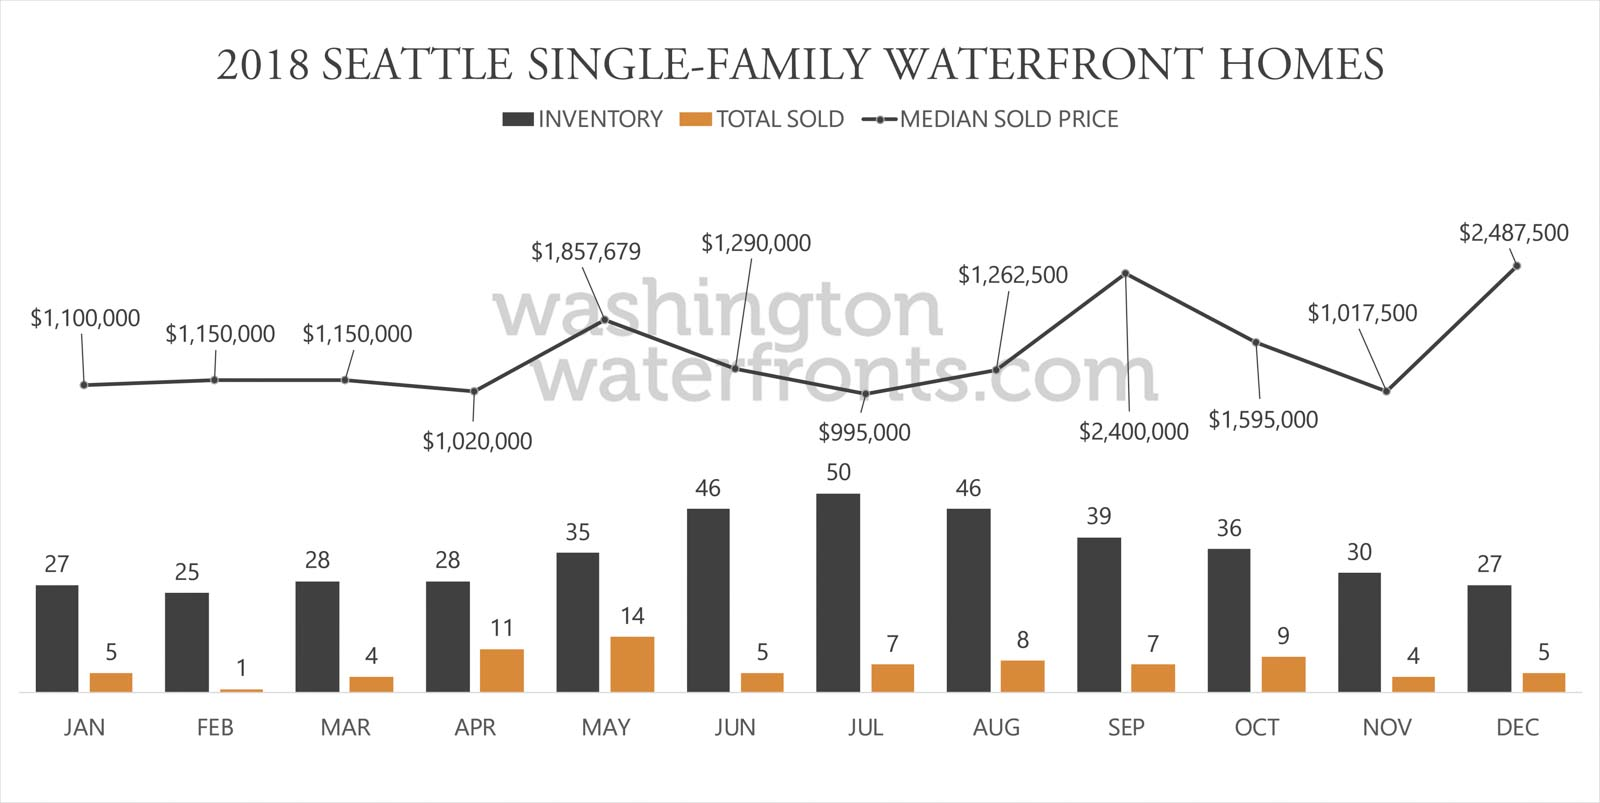 Seattle Waterfront Inventory